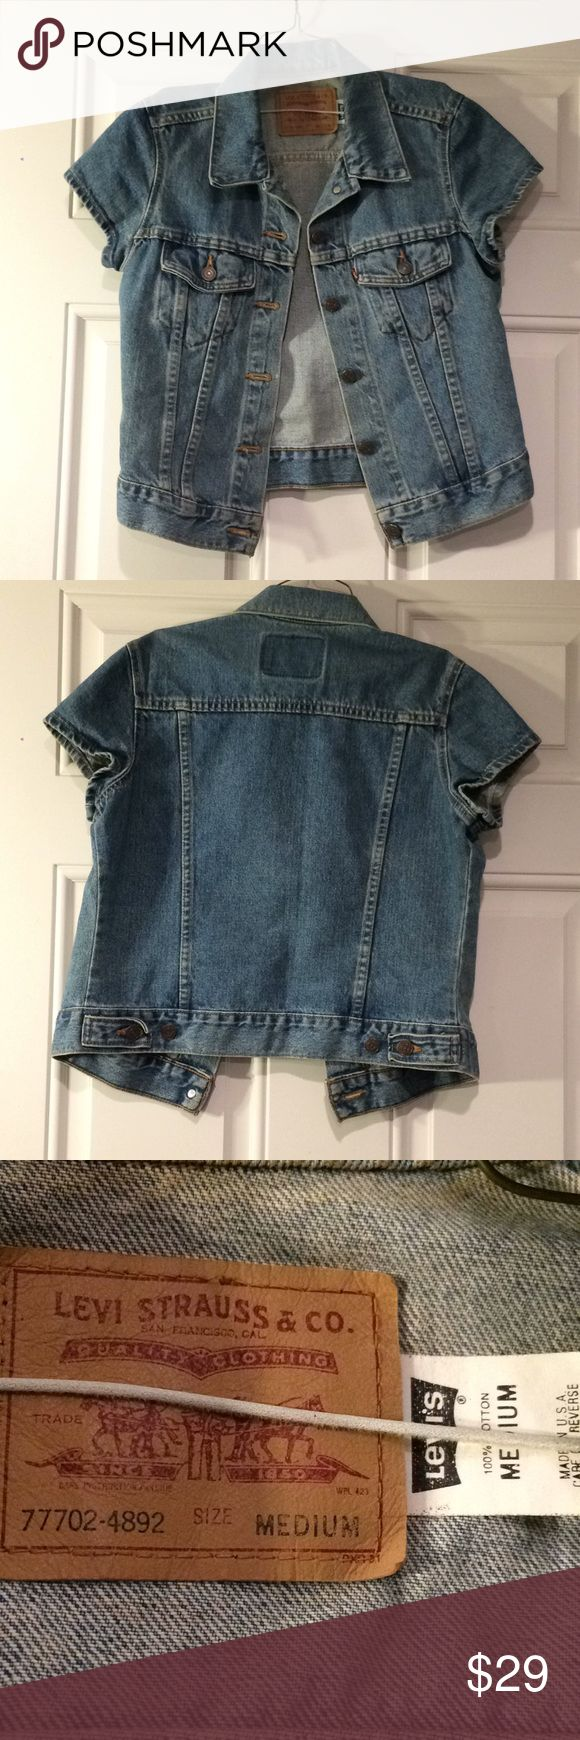 Vintage Levi Strauss Jean-Jacket Short Sleeved Vintage looking women's Levi Strauss short sleeved jean jacket. Size medium. In good condition, no missing buttons or anything like that etc. Comes from smoke/pet free home. Levi's Jackets & Coats Jean Jackets